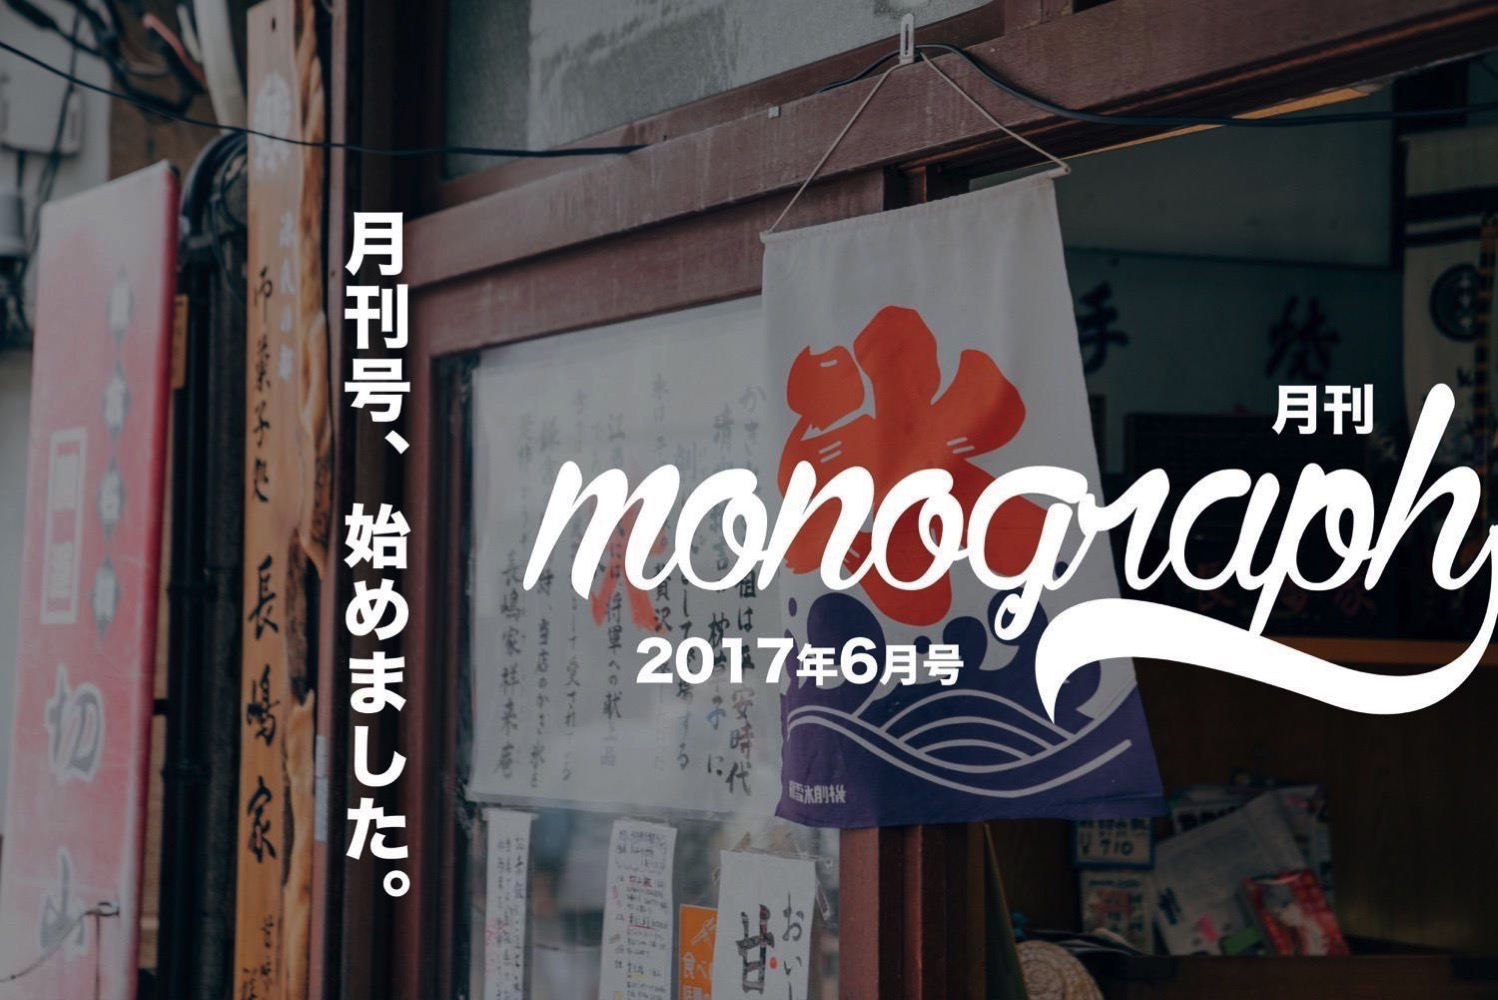 Monthly monograph 201706 1